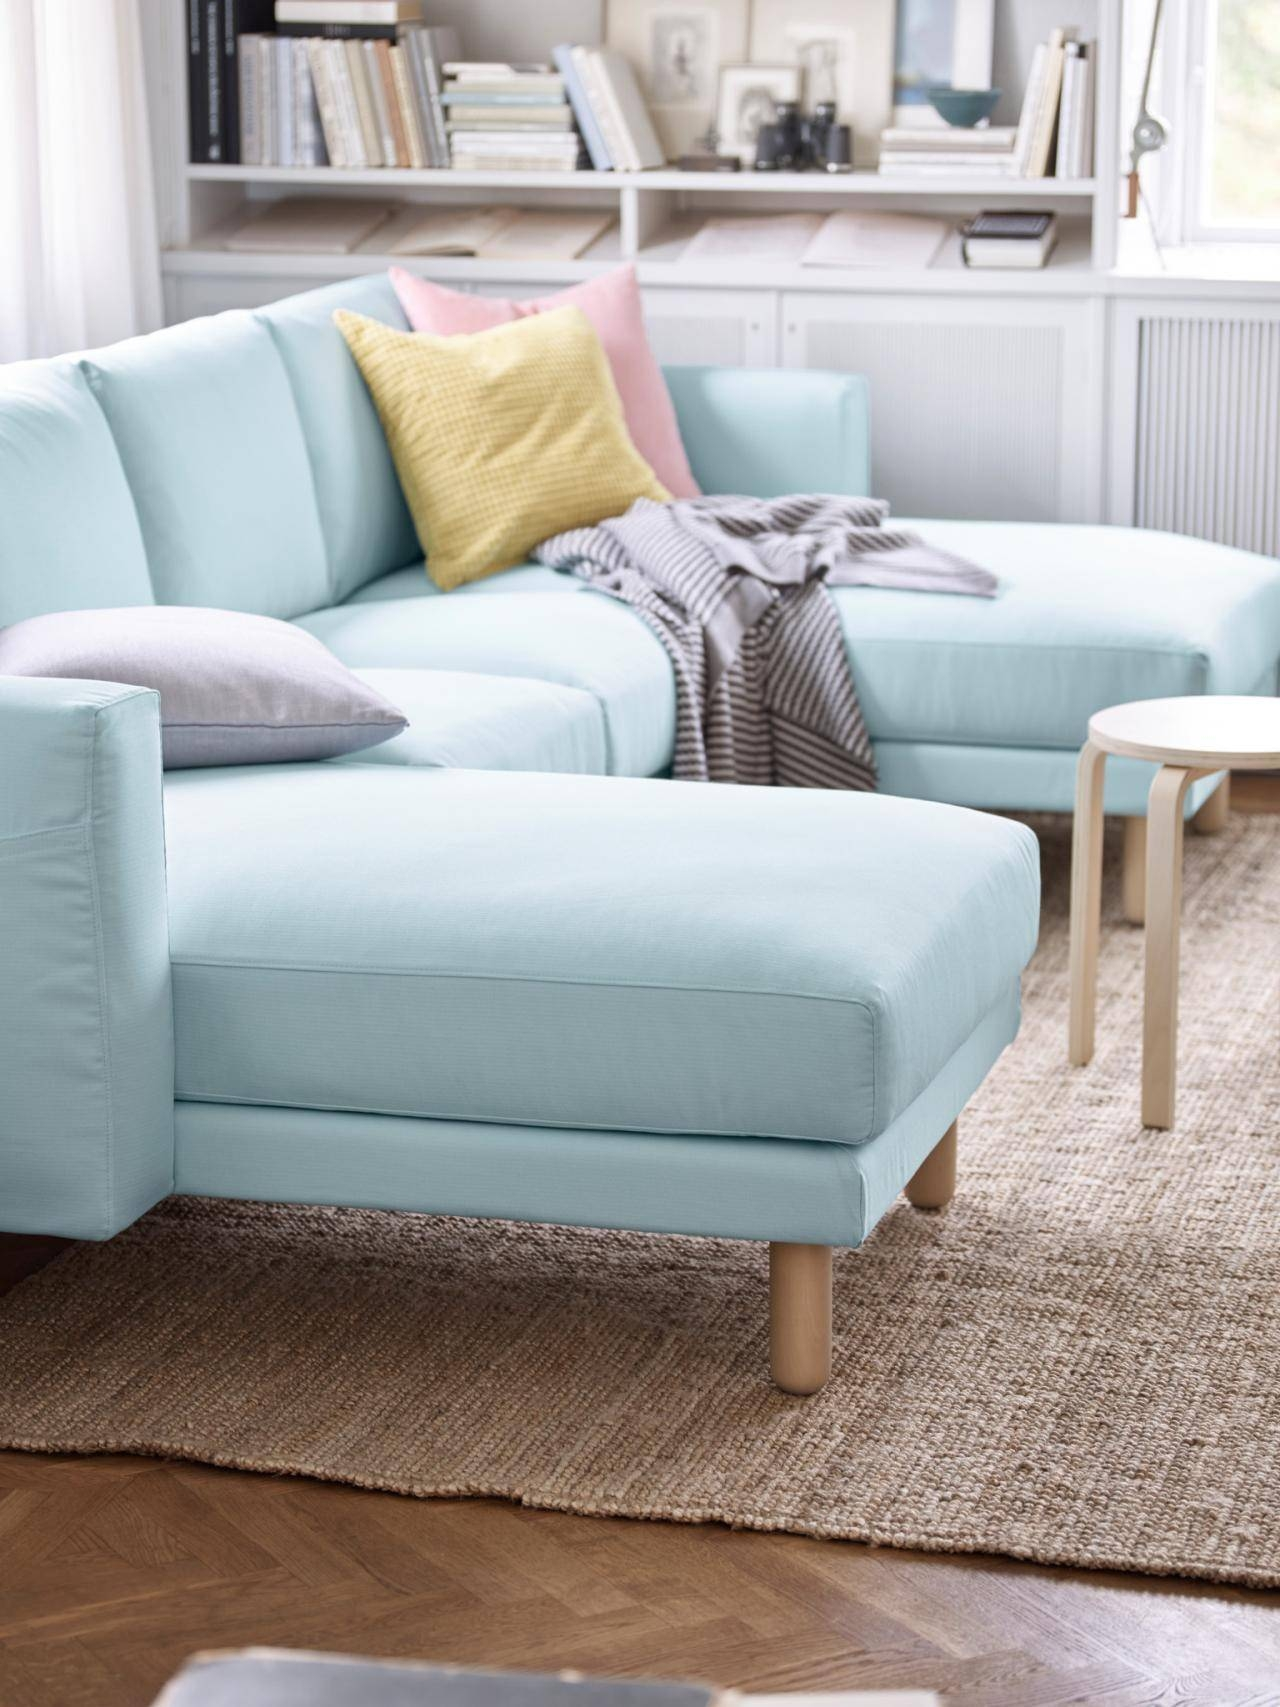 5 Apartment Sized Sofas That Are Lifesavers | Hgtv's Decorating in Sofas With Lights (Image 1 of 30)